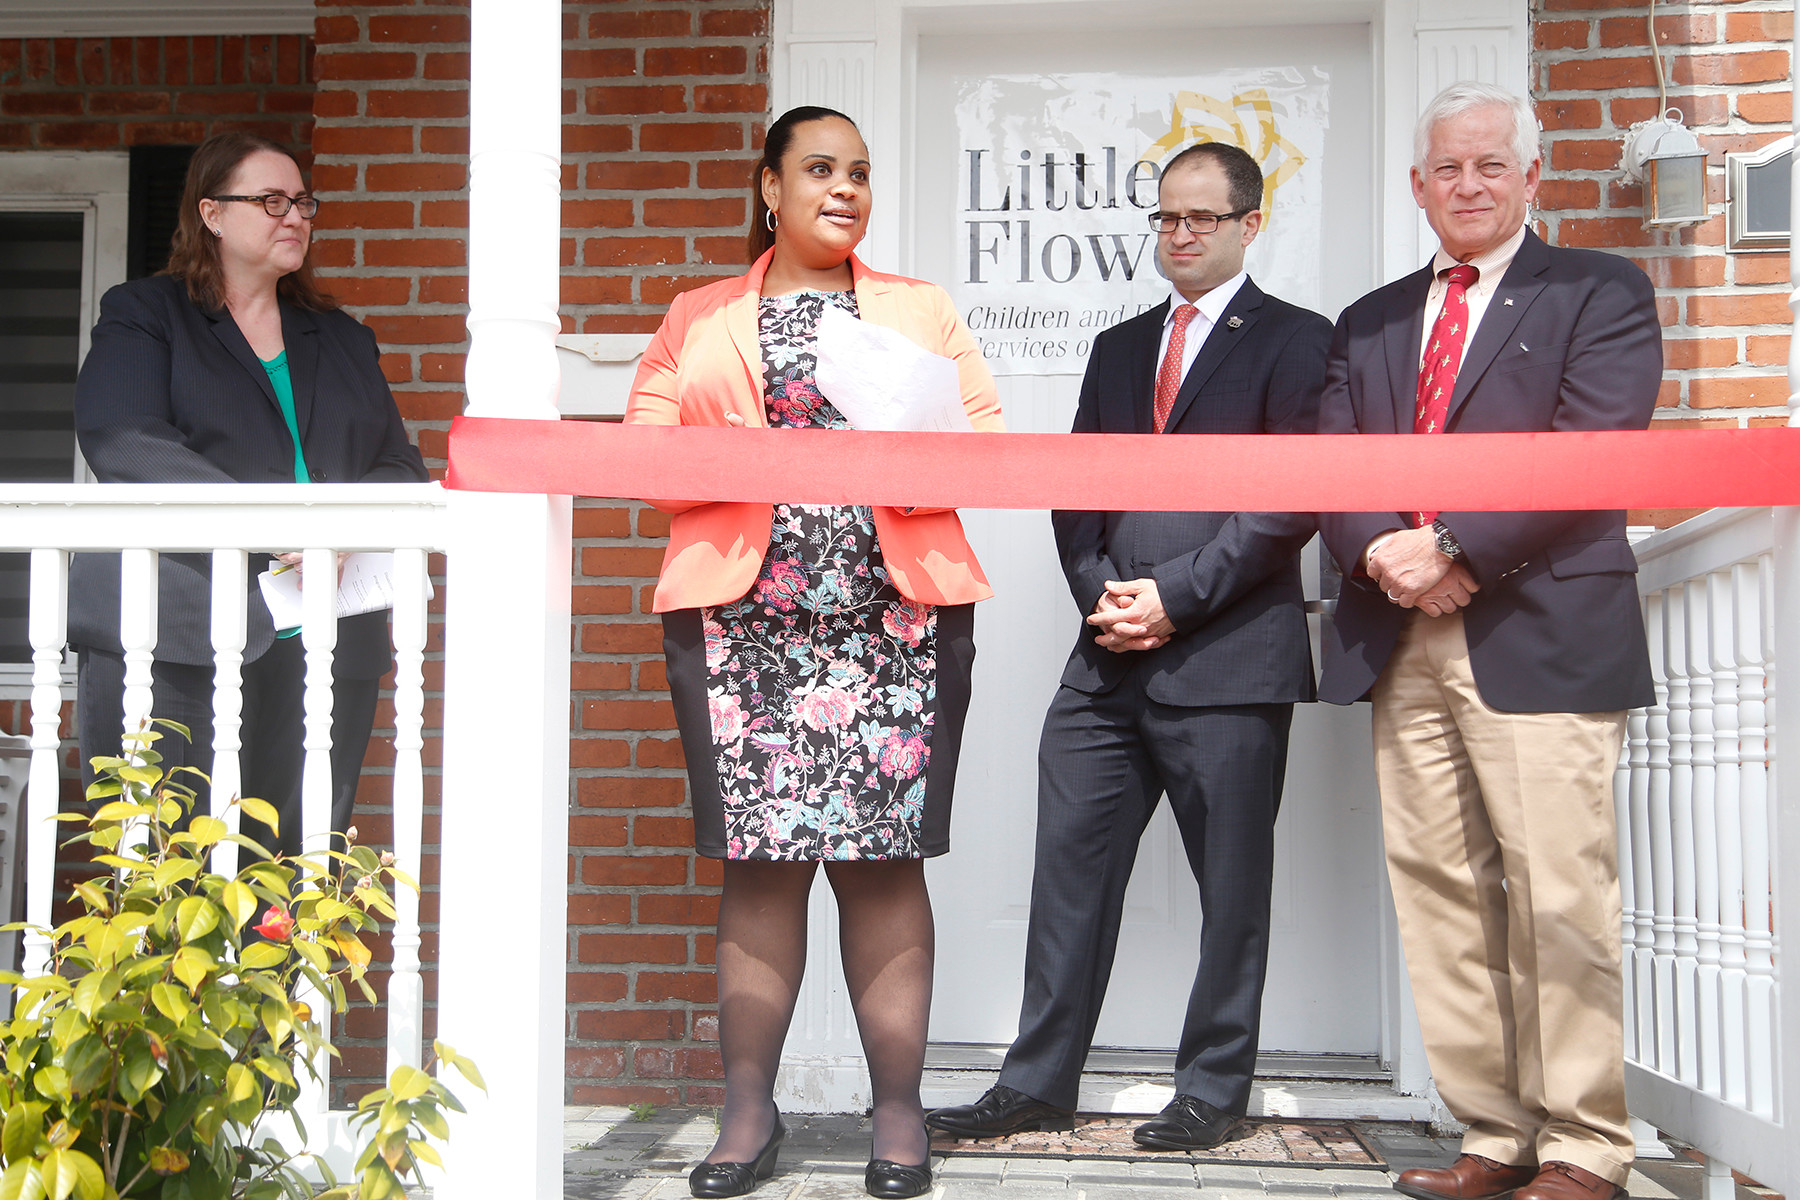 Corinne Hammons, CEO of Little Flower, Tanisha Washington, VP, Assemblyman Ed Ra and Assemblyman Chuck Lavine.